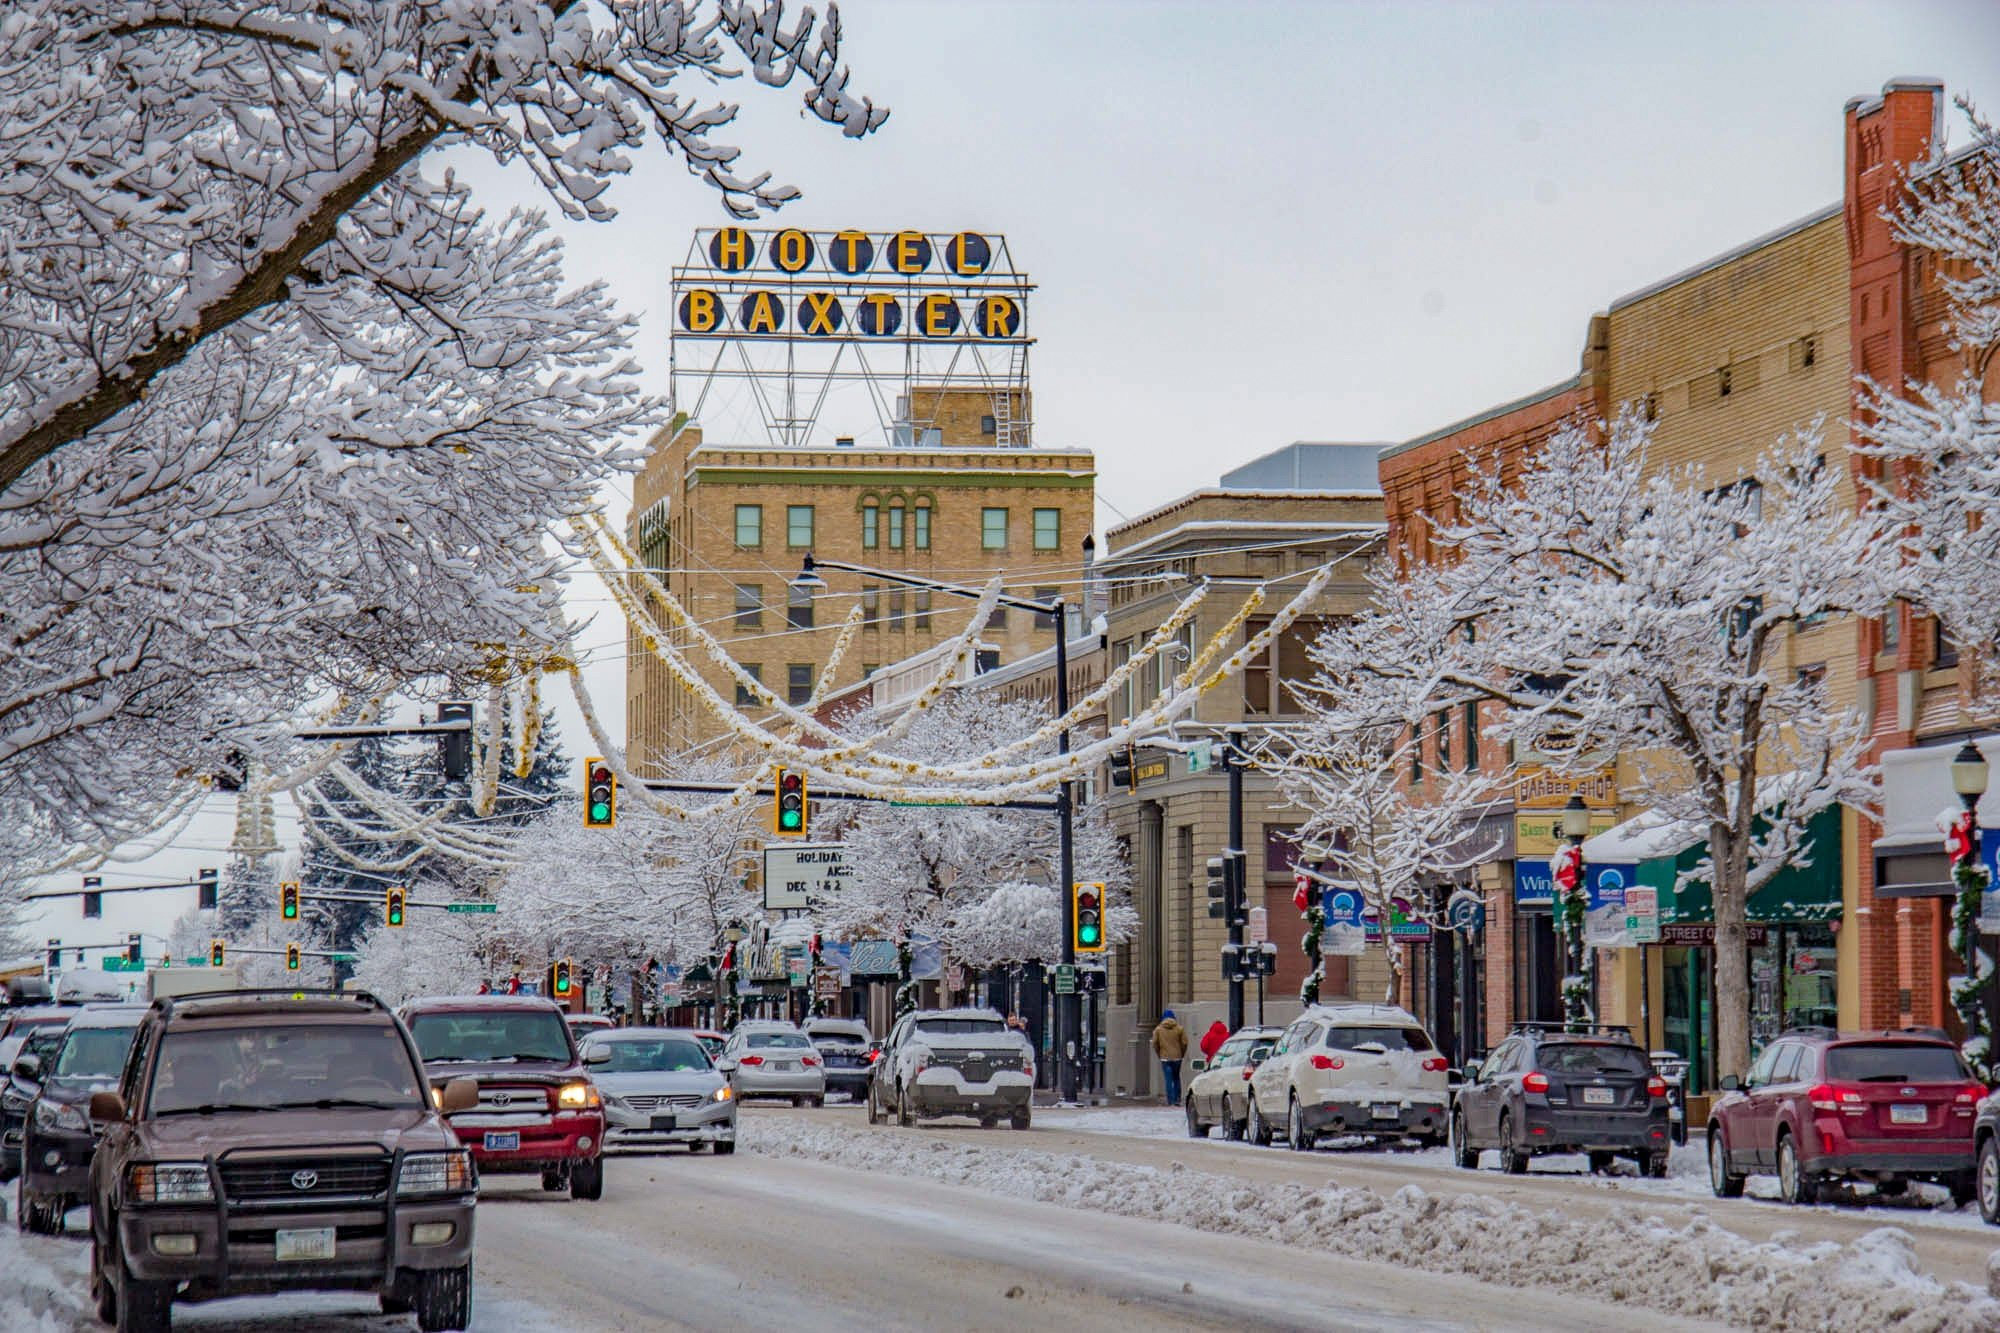 Winter in Downtown Bozeman